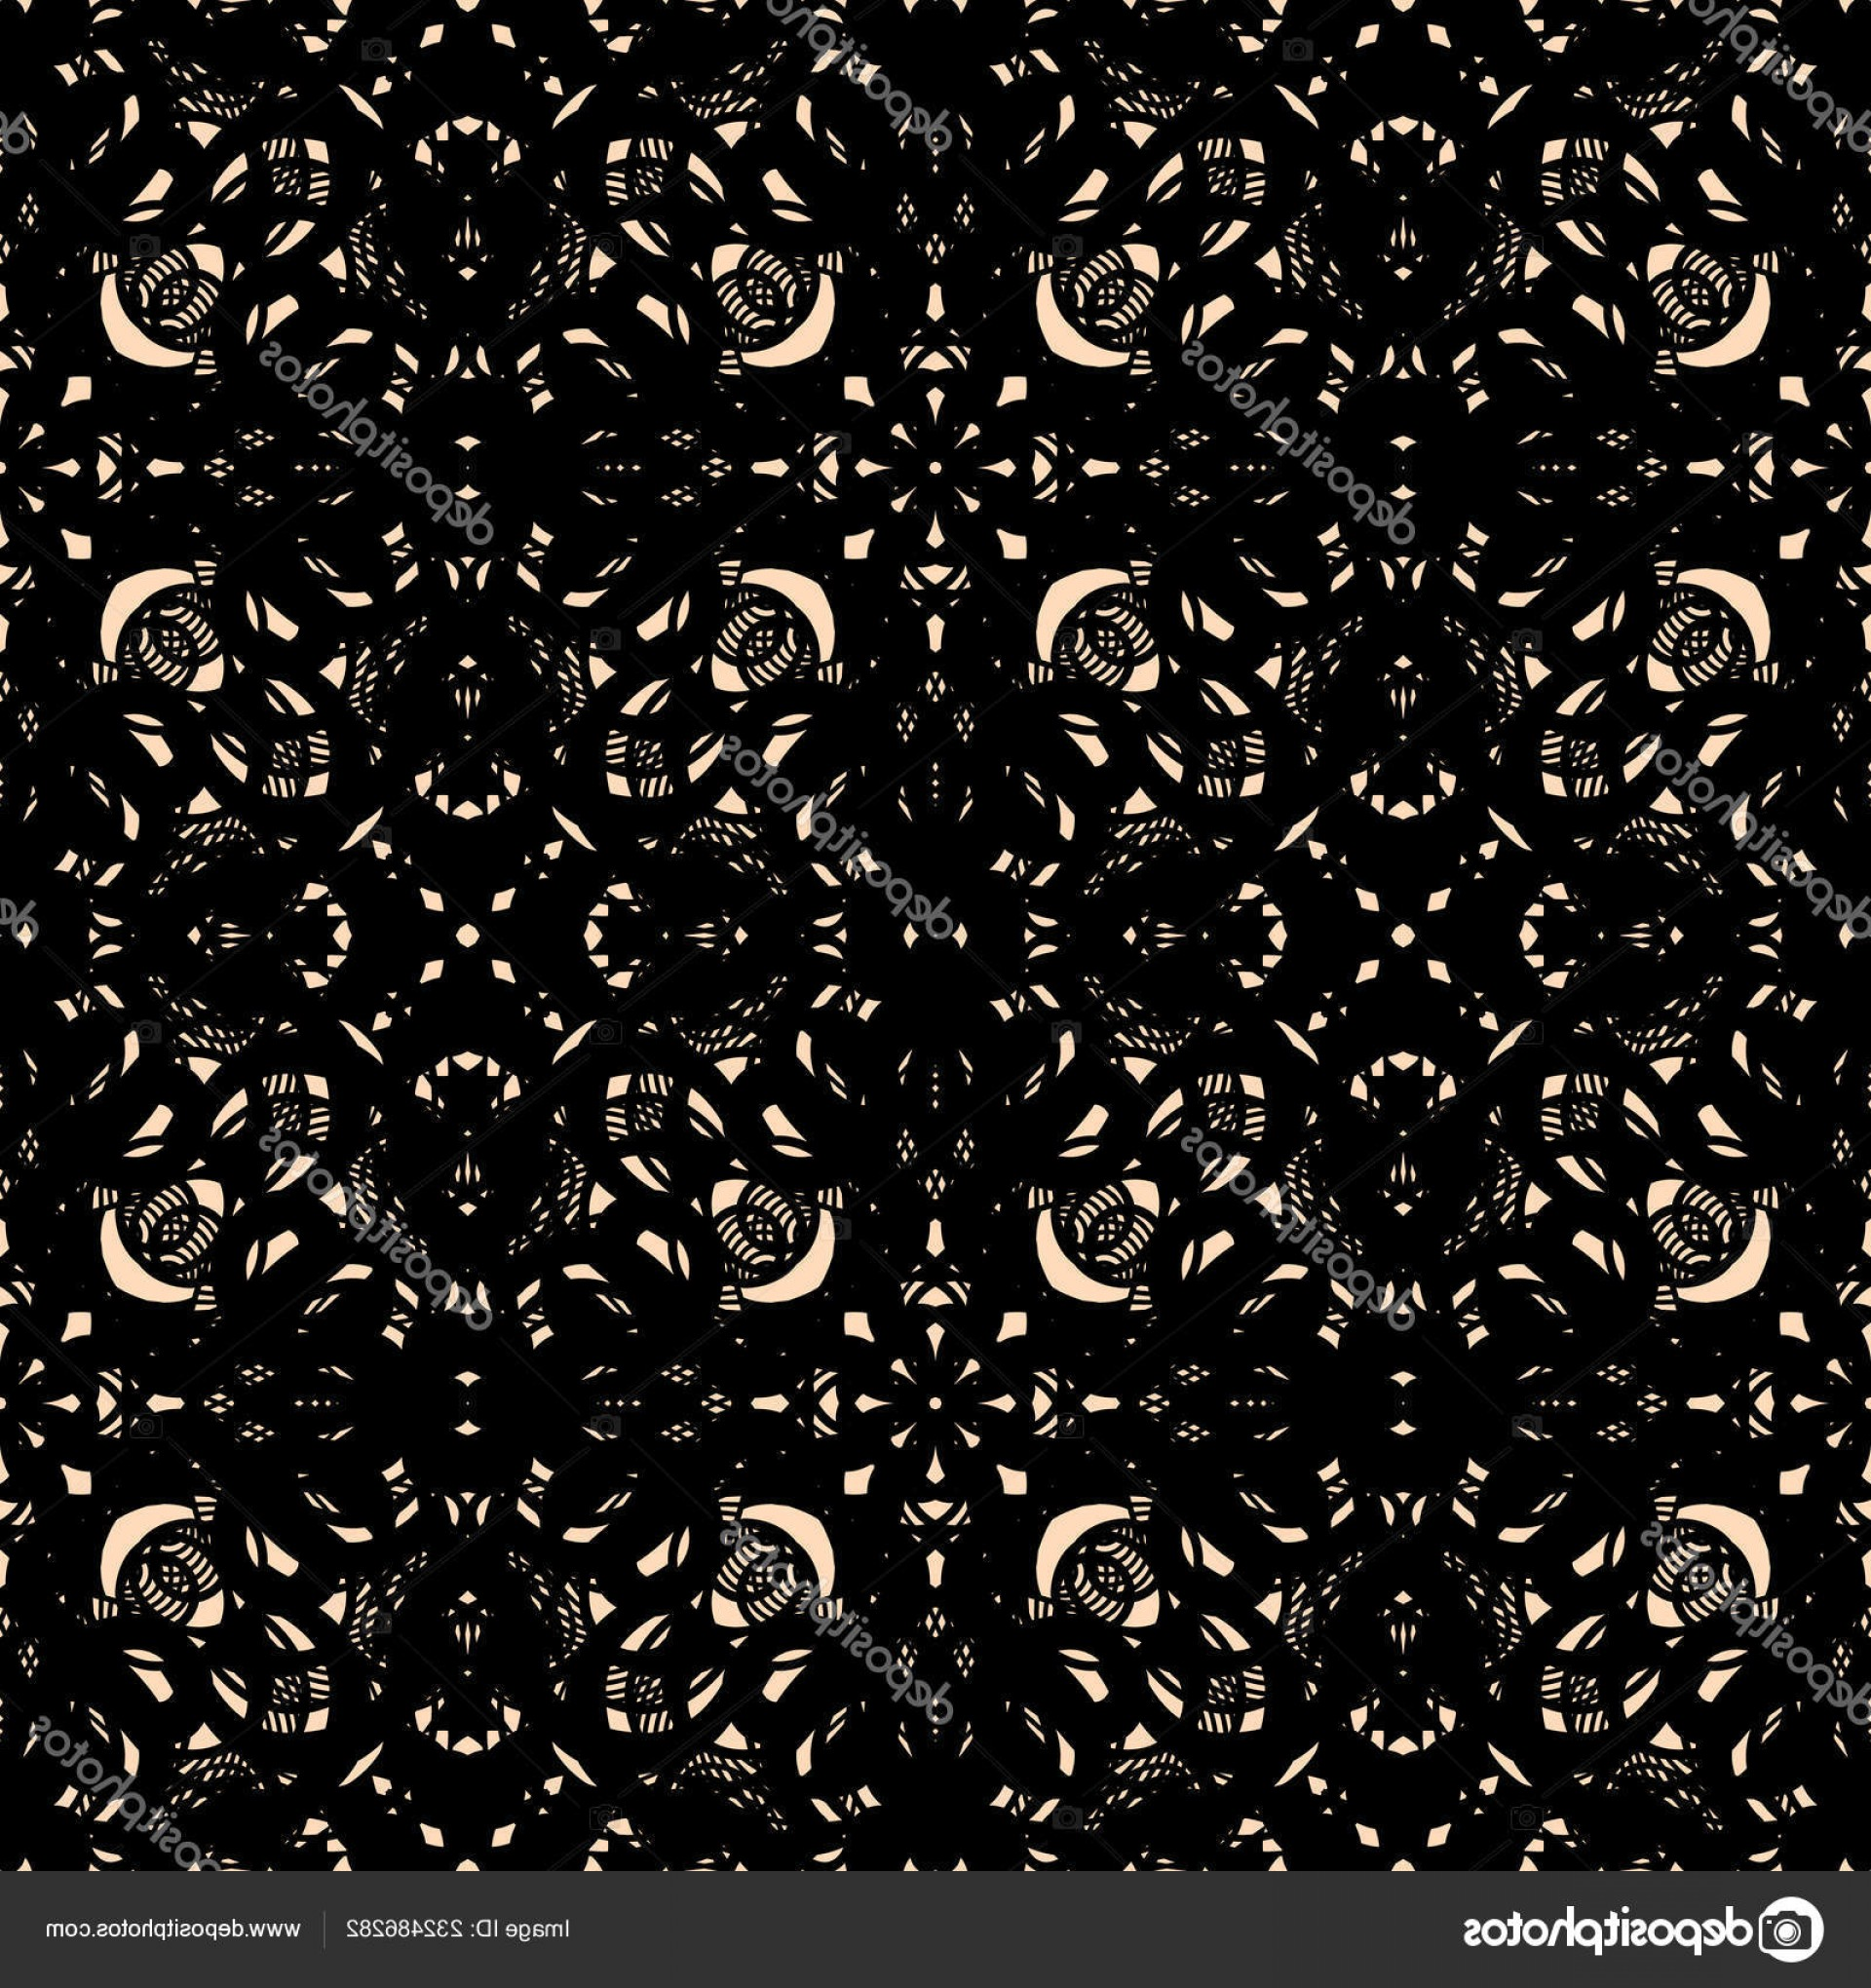 Tulle Black Lace Pattern Vector: Stock Illustration Ornate Black Guipure Lace Seamless